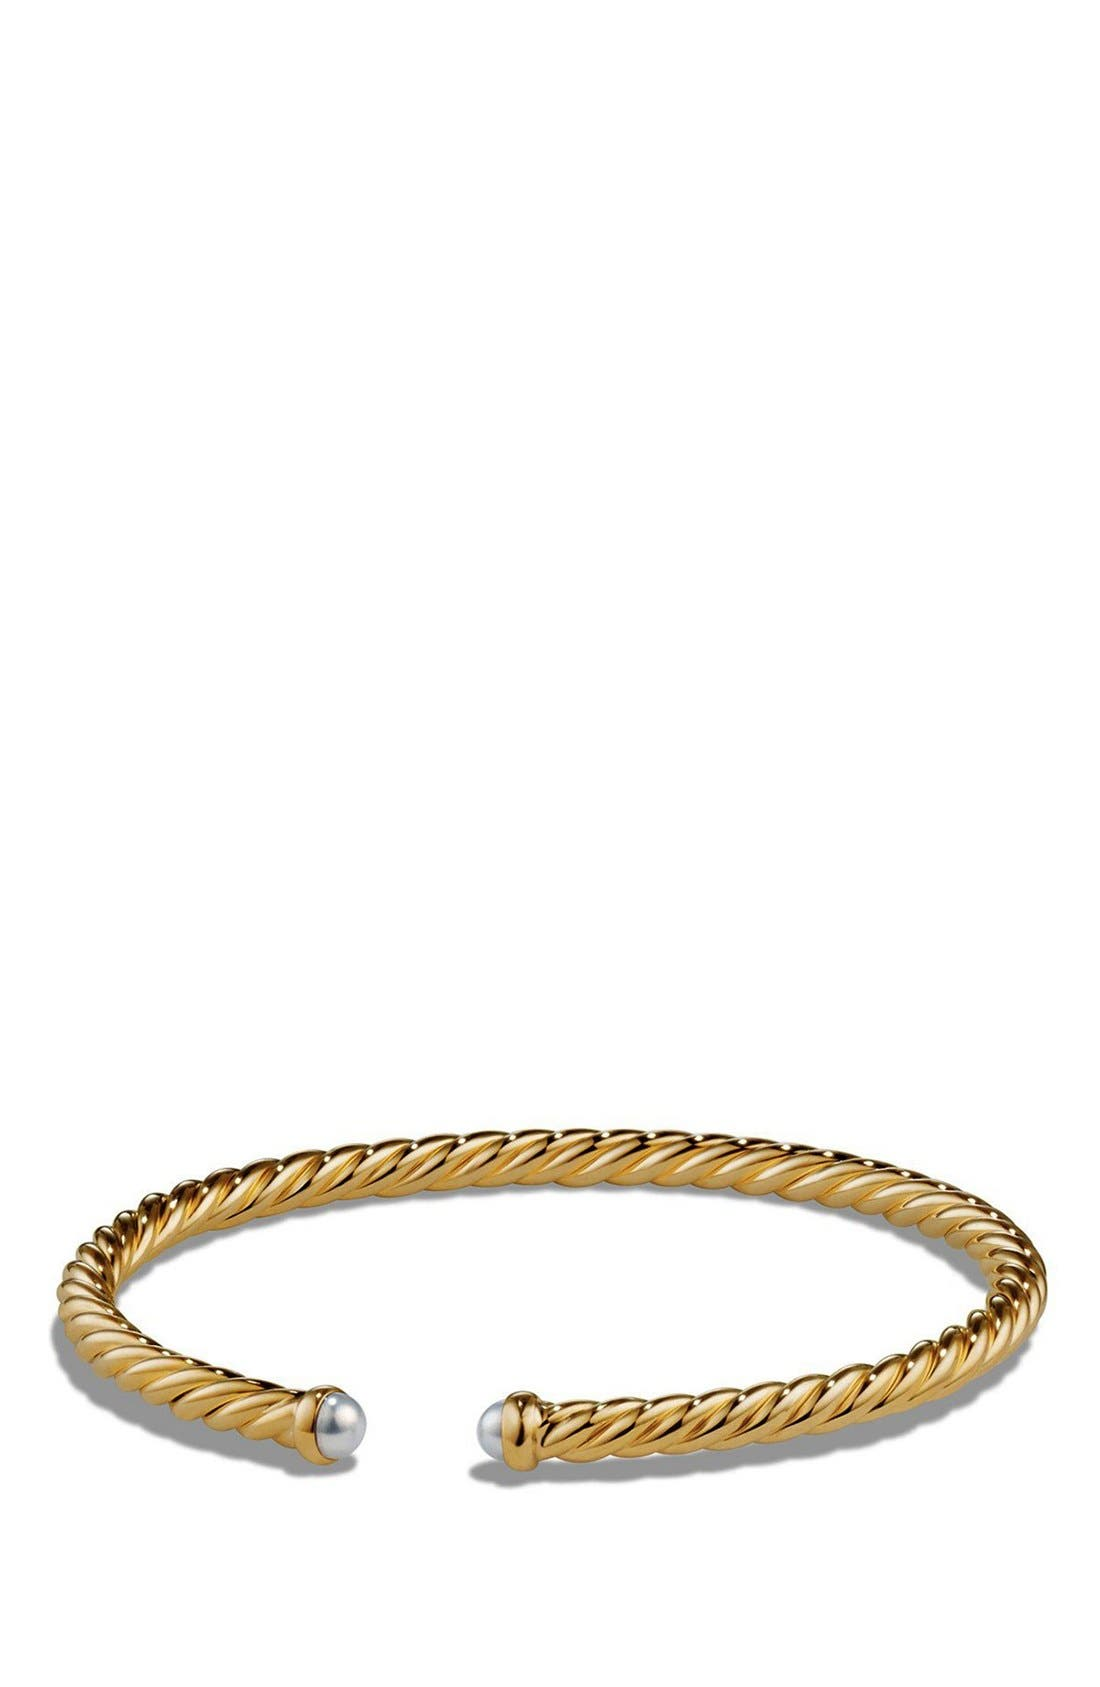 Main Image - David Yurman Cable Spira Bracelet with Semiprecious Stones in 18K Gold